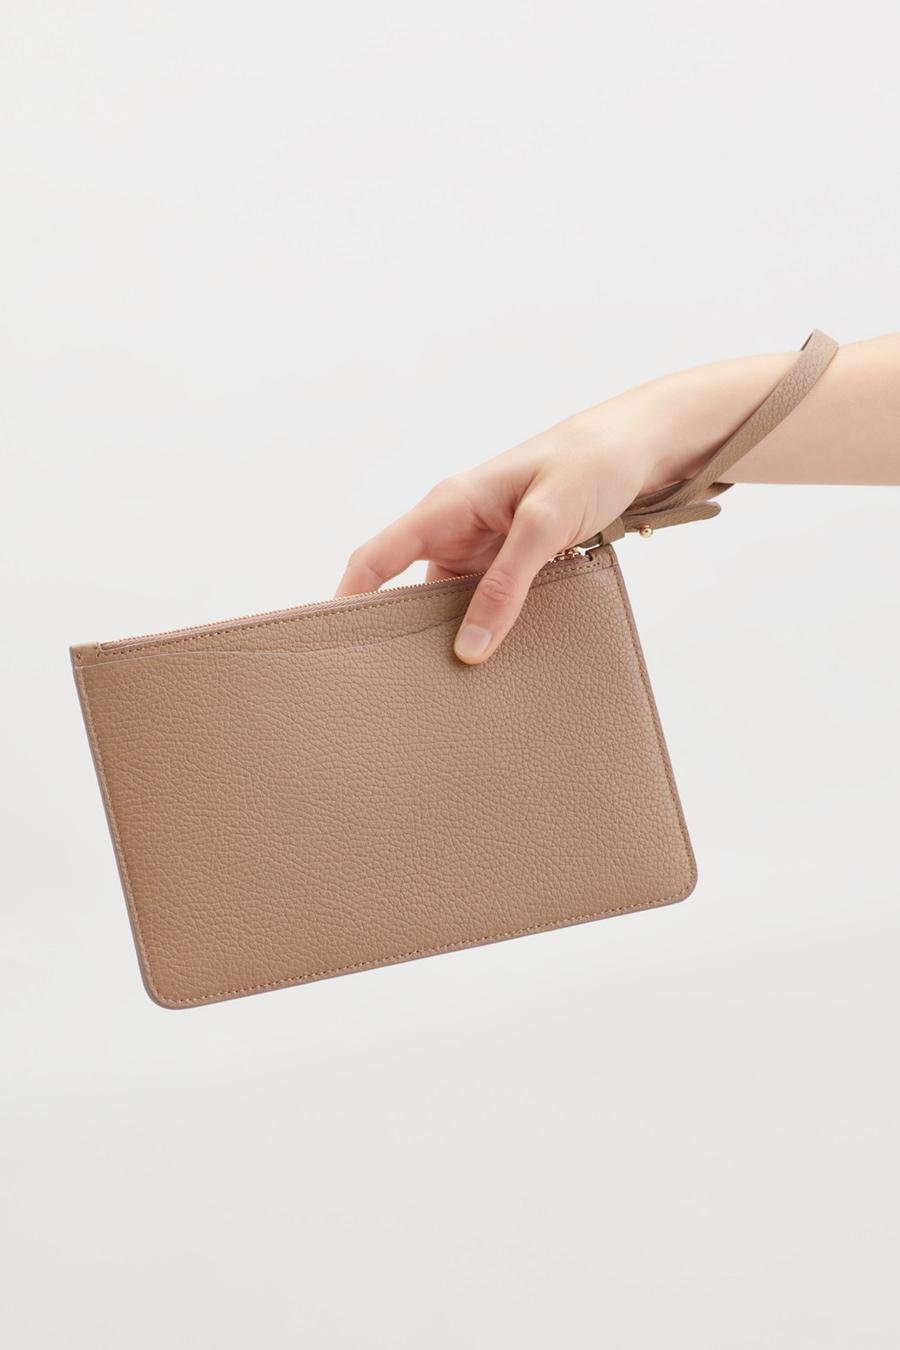 Women's Slim Wristlet Wallet in Cappuccino | Pebbled Leather by Cuyana 4